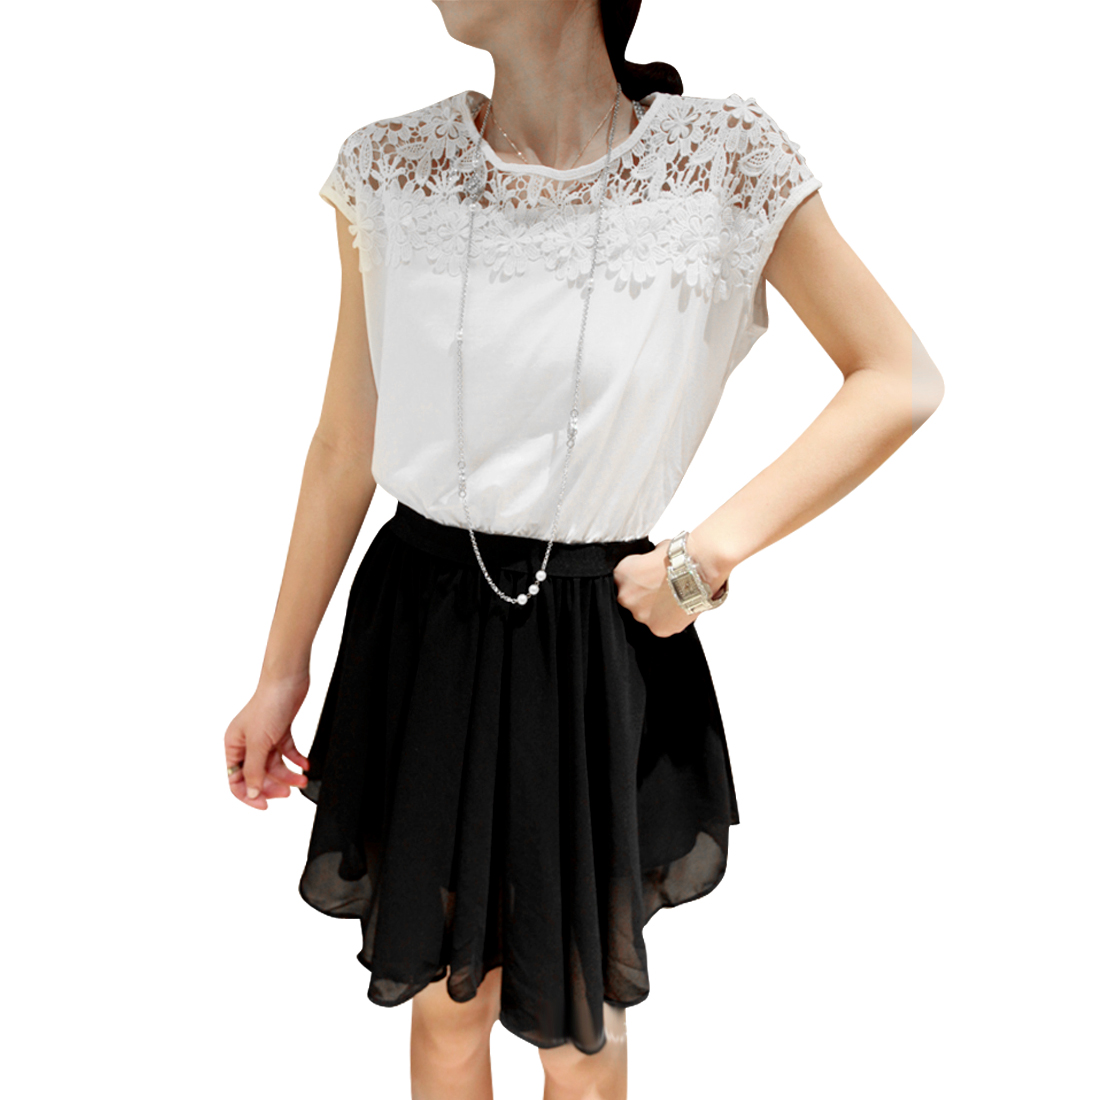 Women Round Neck Raglan Sleeve Crochet Dress White Black XS